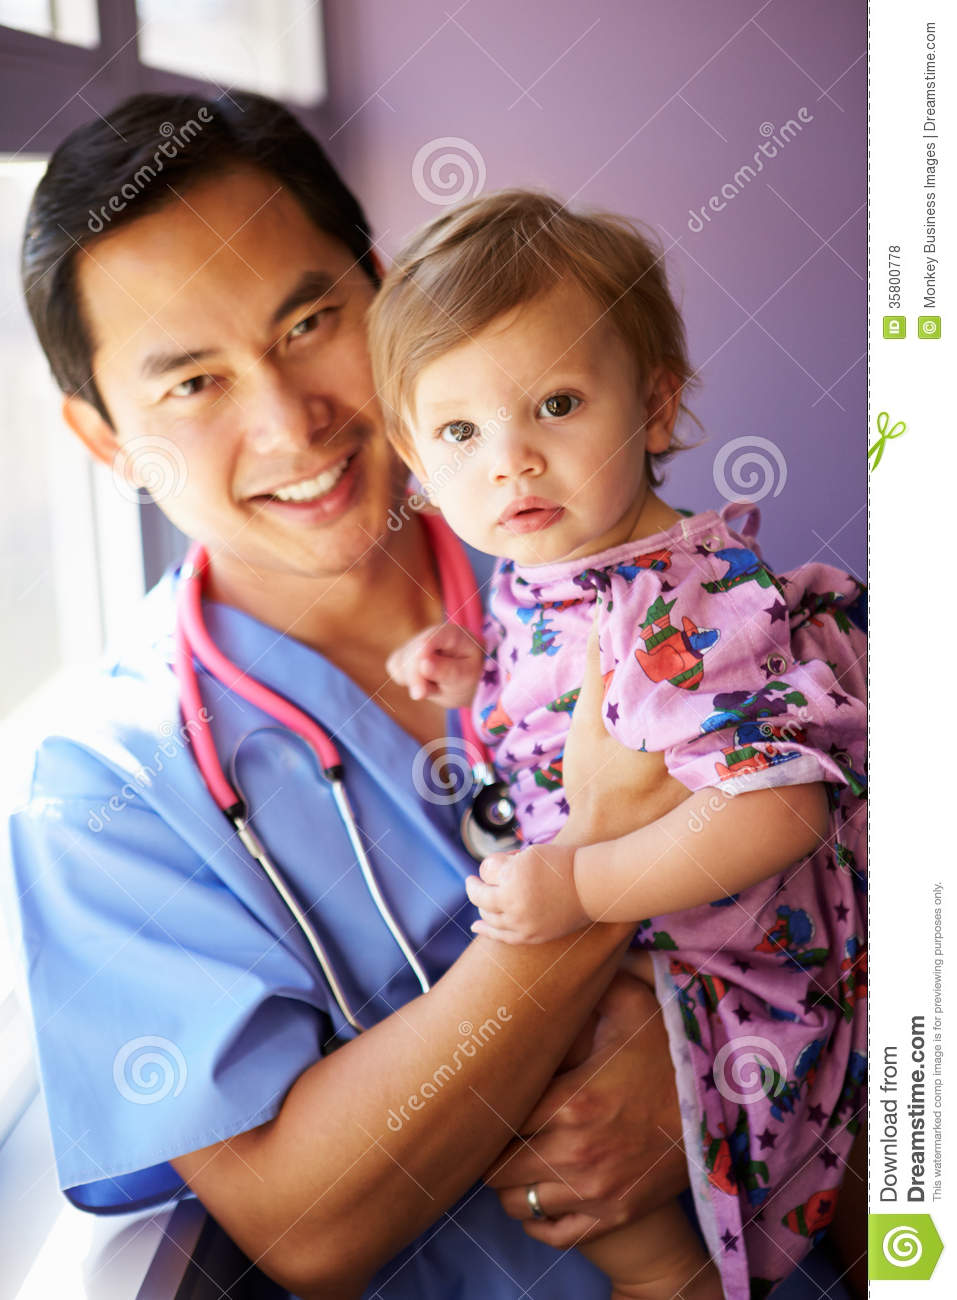 Young Girl Being Held By Male Pediatric Nurse Royalty Free